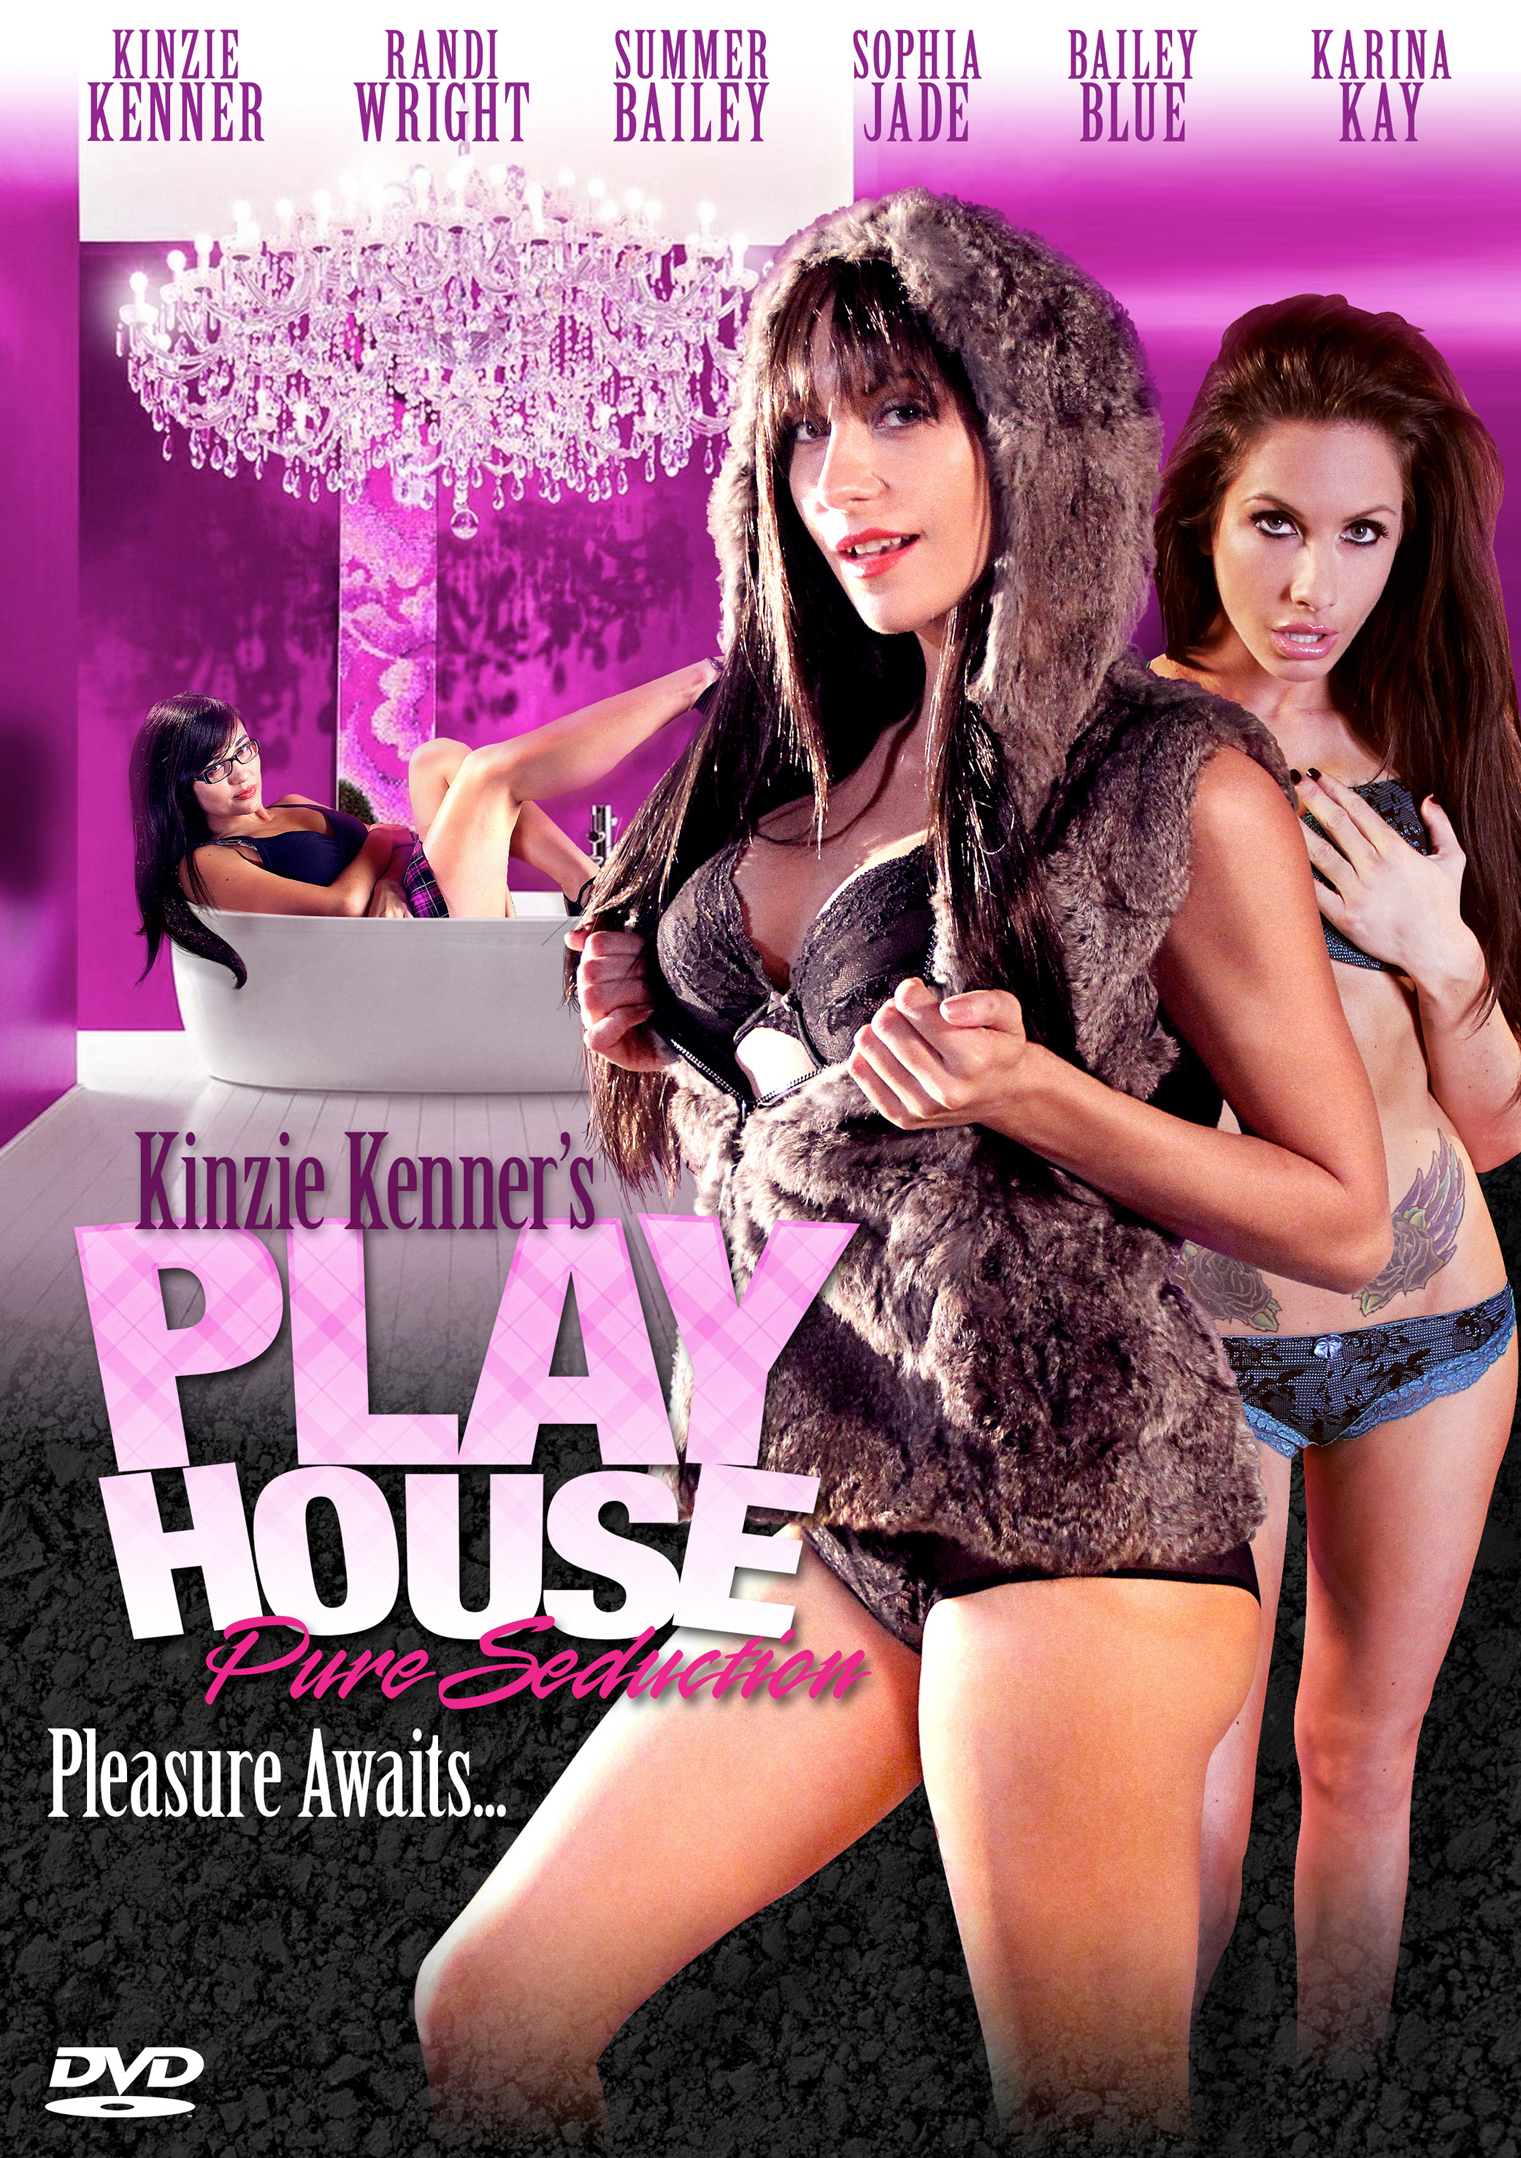 Kinzie Kenner's Pleasure Playhouse: Pure Seduction